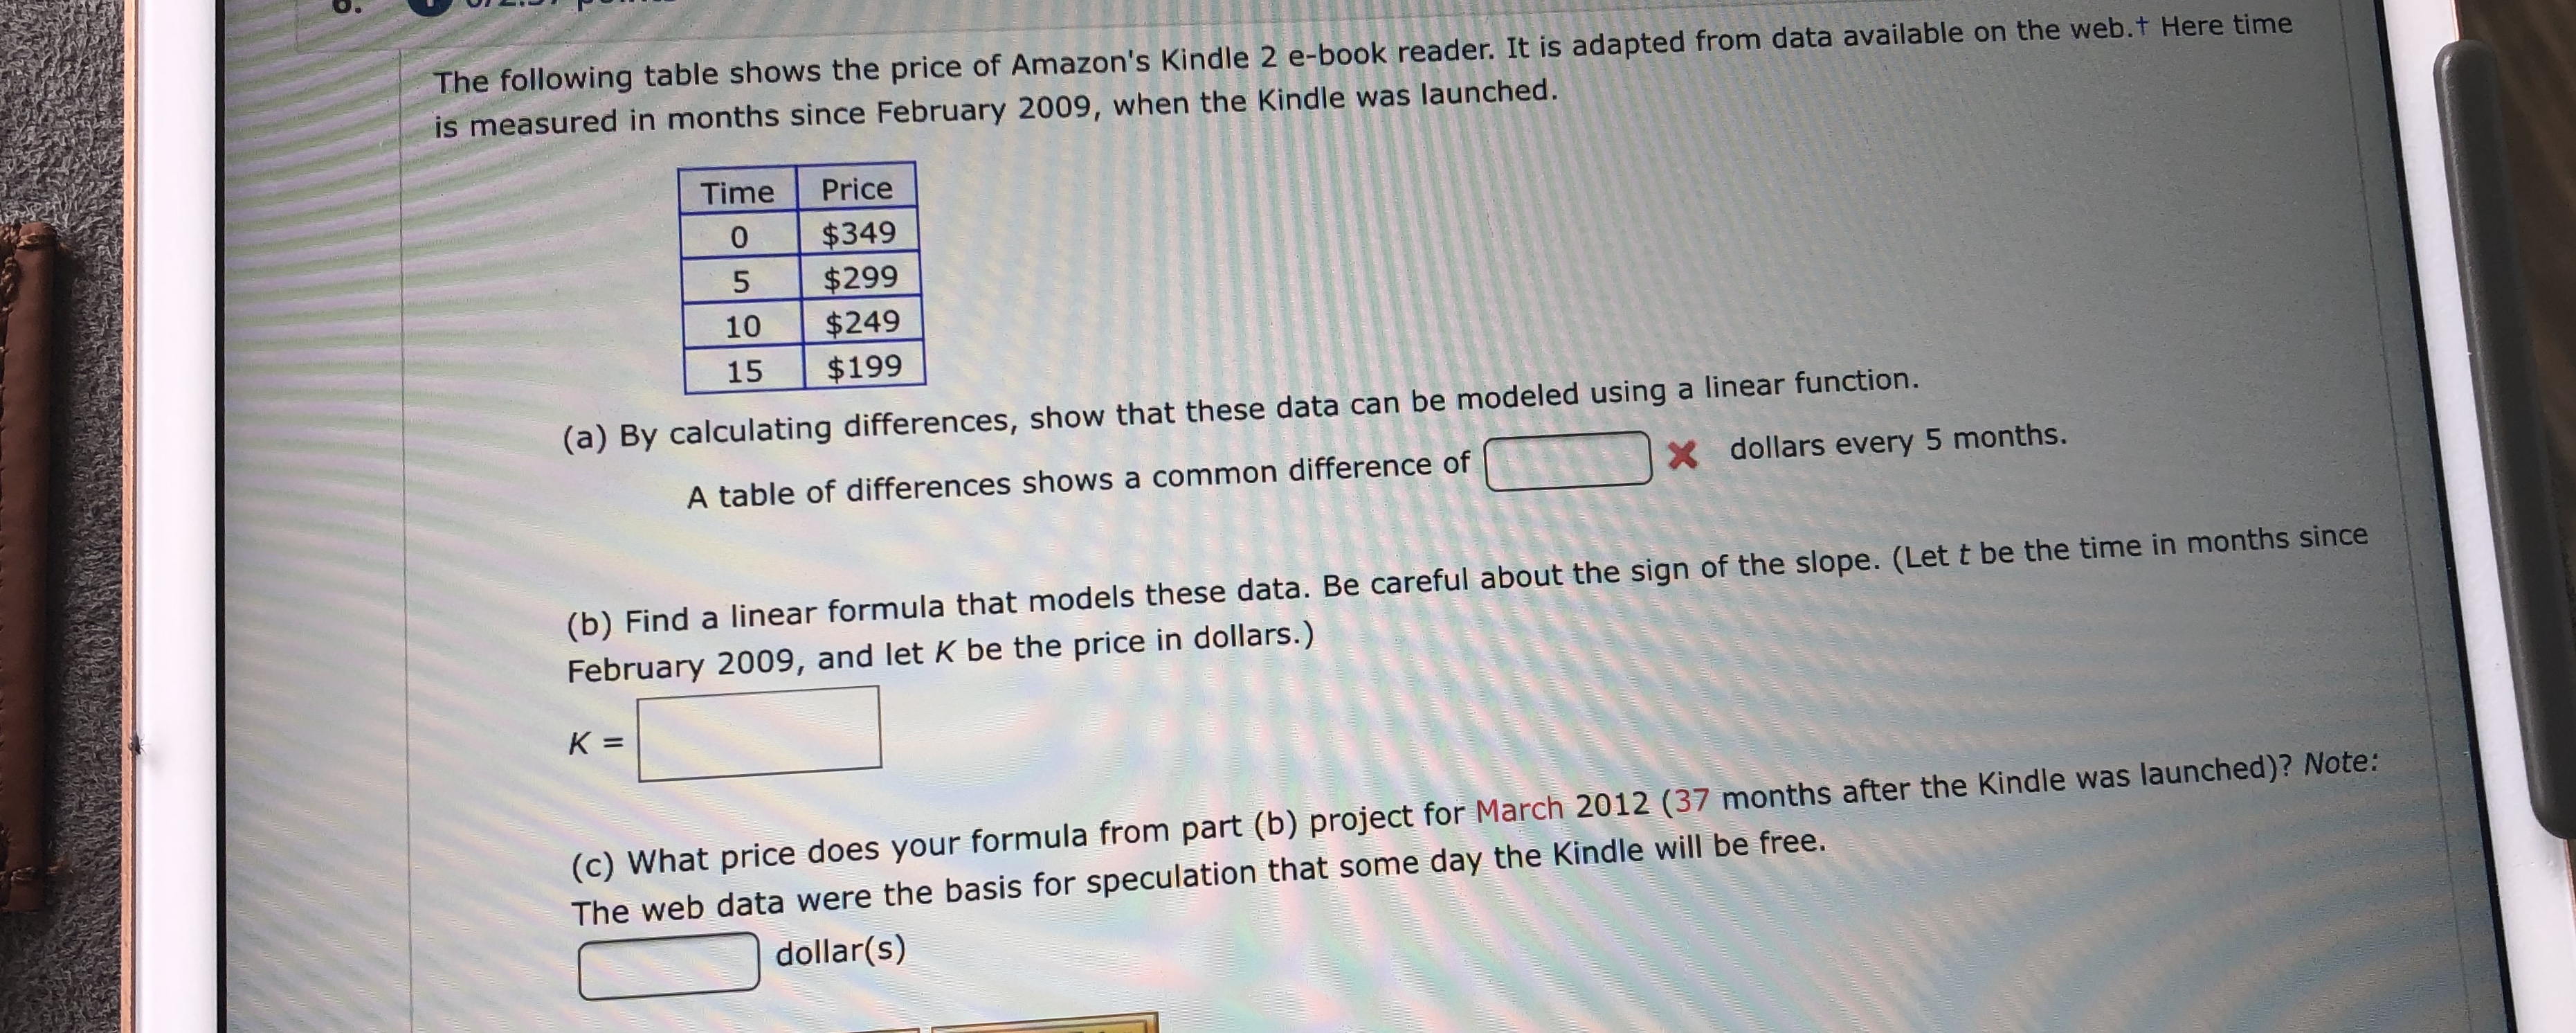 The following table shows the price of Amazon's Kindle 2 e-book reader. It is adapted from data available on the web.t Here time is measured in months since February 2009, when the Kindle was launched. Time Price $349 $299 $249 $199 0 5 10 15 (a) By calculating differences, show that these data can be modeled using a linear function. X dollars every 5 months. A table of differences shows a common difference of (b) Find a linear formula that models these data. Be careful about the sign of the slope. (Let t be the time in months since February 2009, and let K be the price in dollars.) K = (c) What price does your formula from part (b) project for March 2012 (37 months after the Kindle was launched)? Note: The web data were the basis for speculation that some day the Kindle will be free. dollar(s)